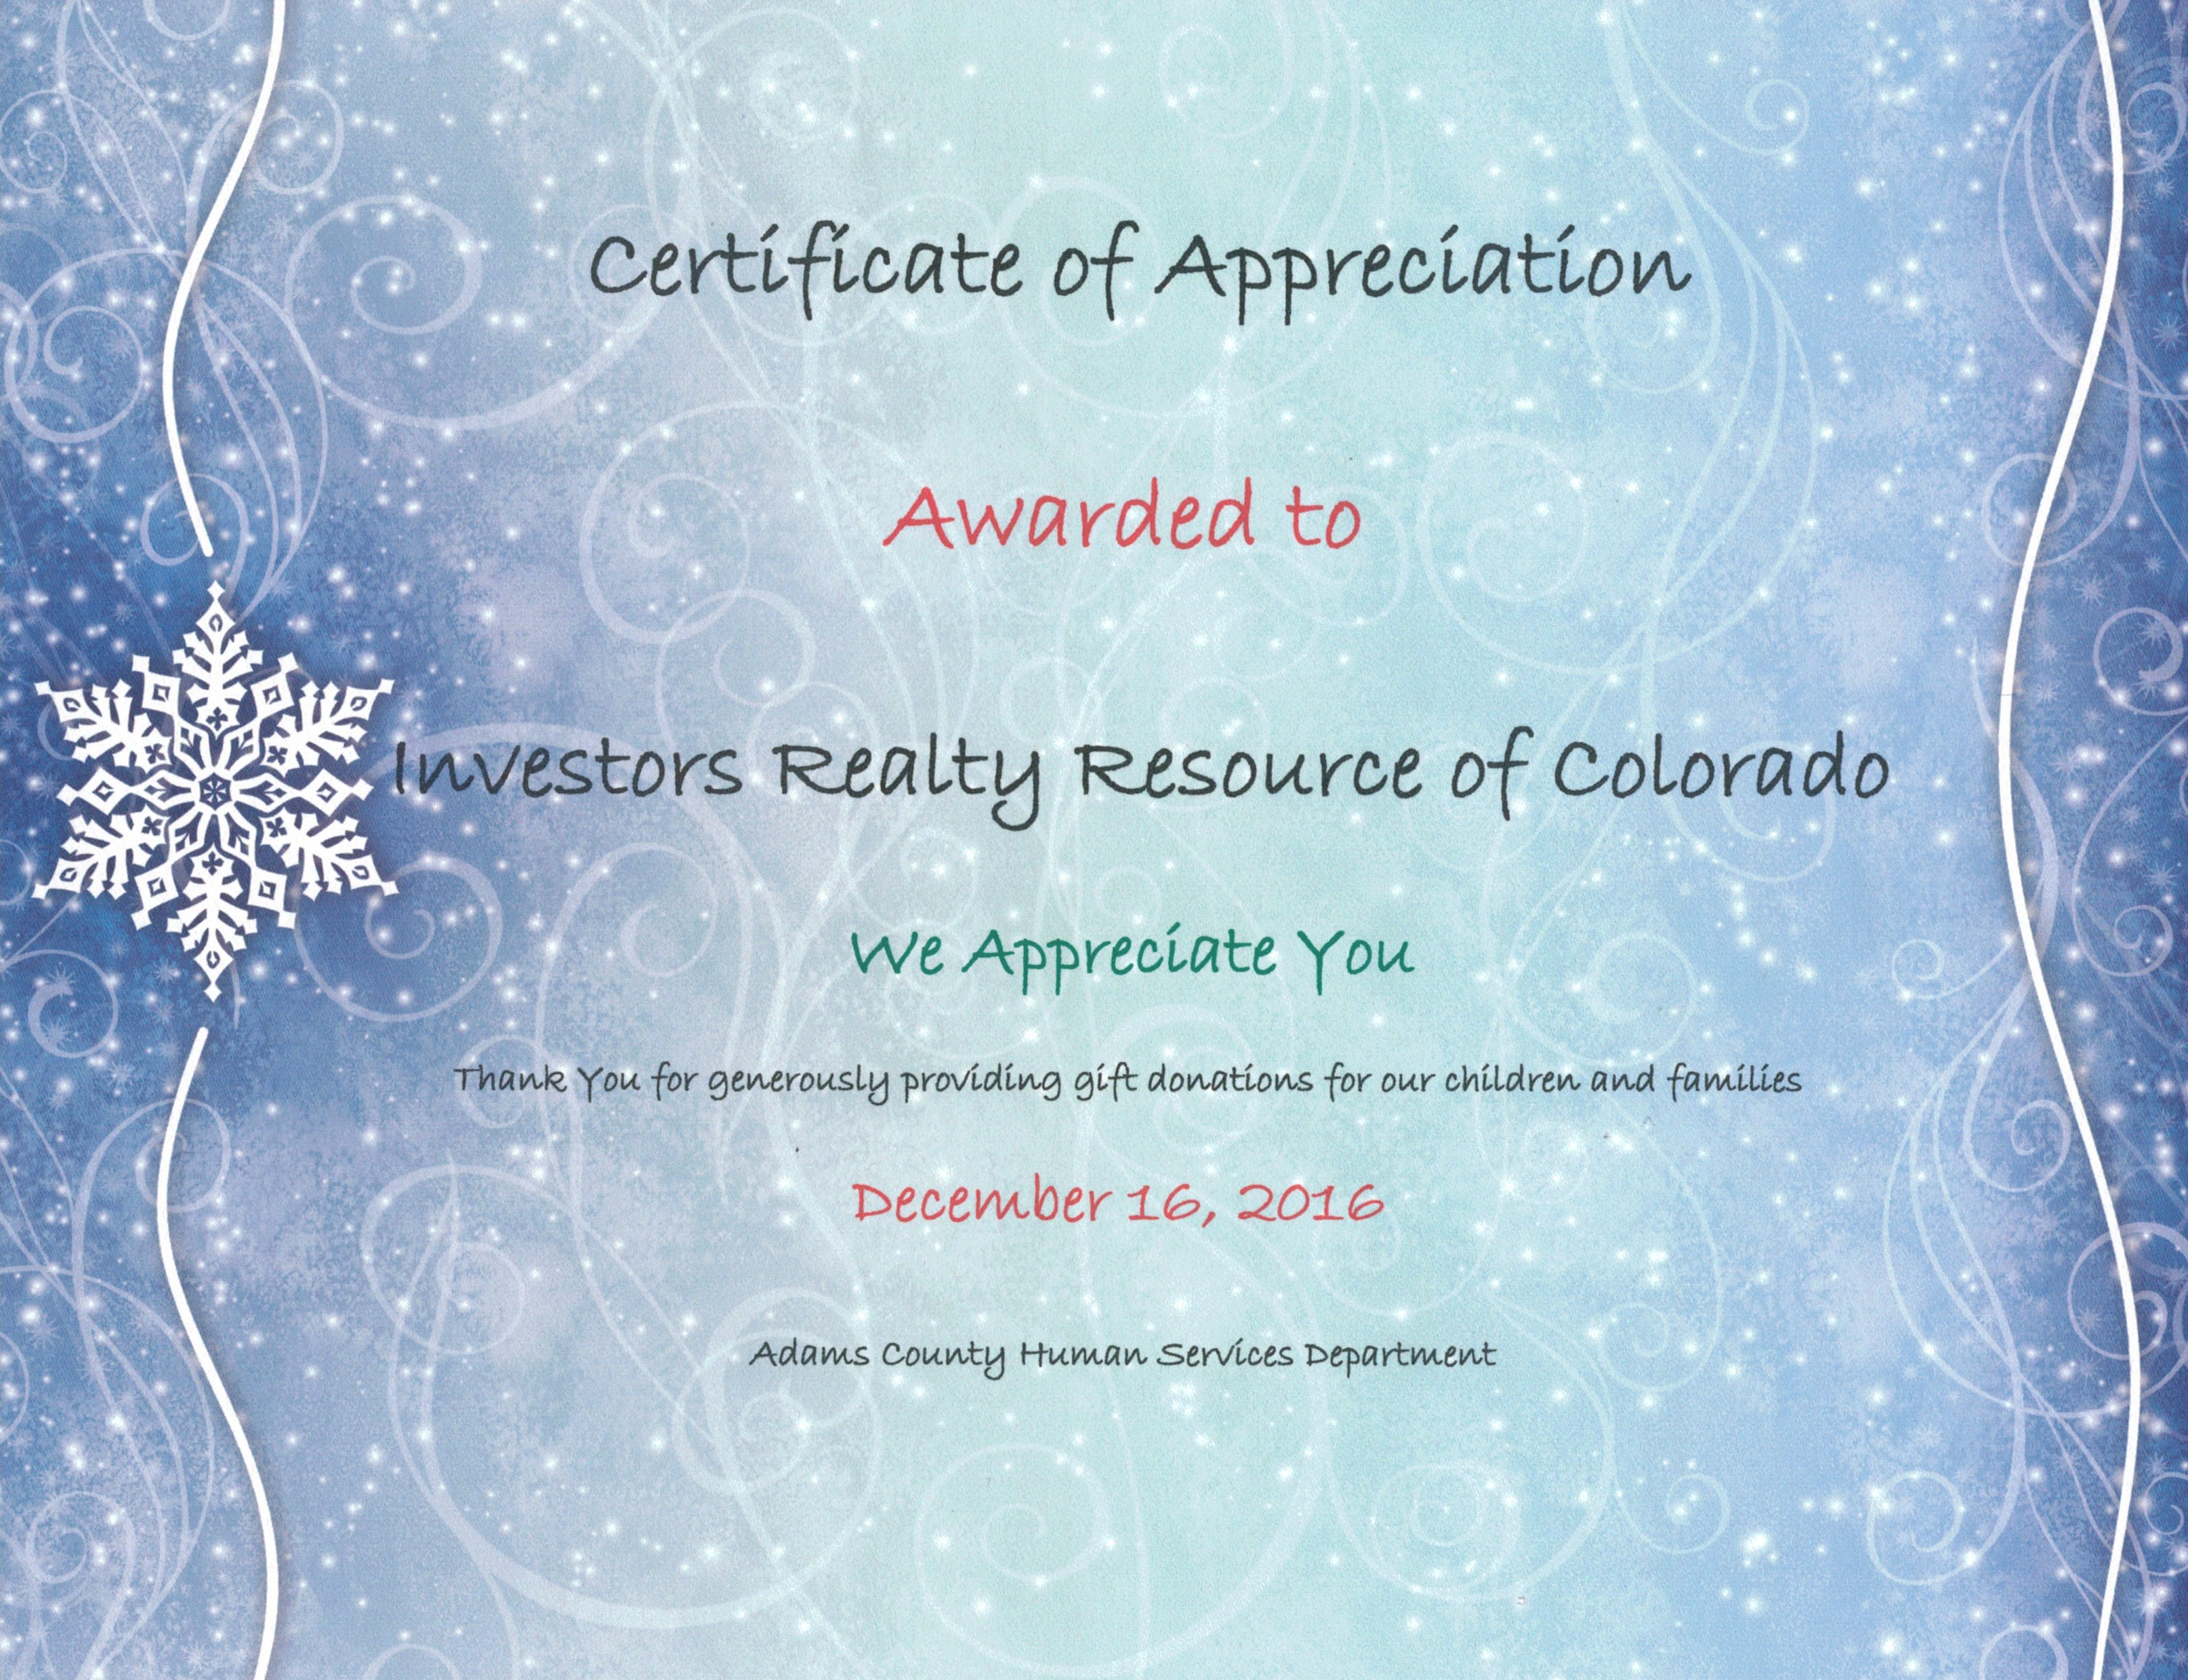 About irroc irroc investors realty resource of colorado certificate of appreciation 2016 adams county human services yadclub Image collections